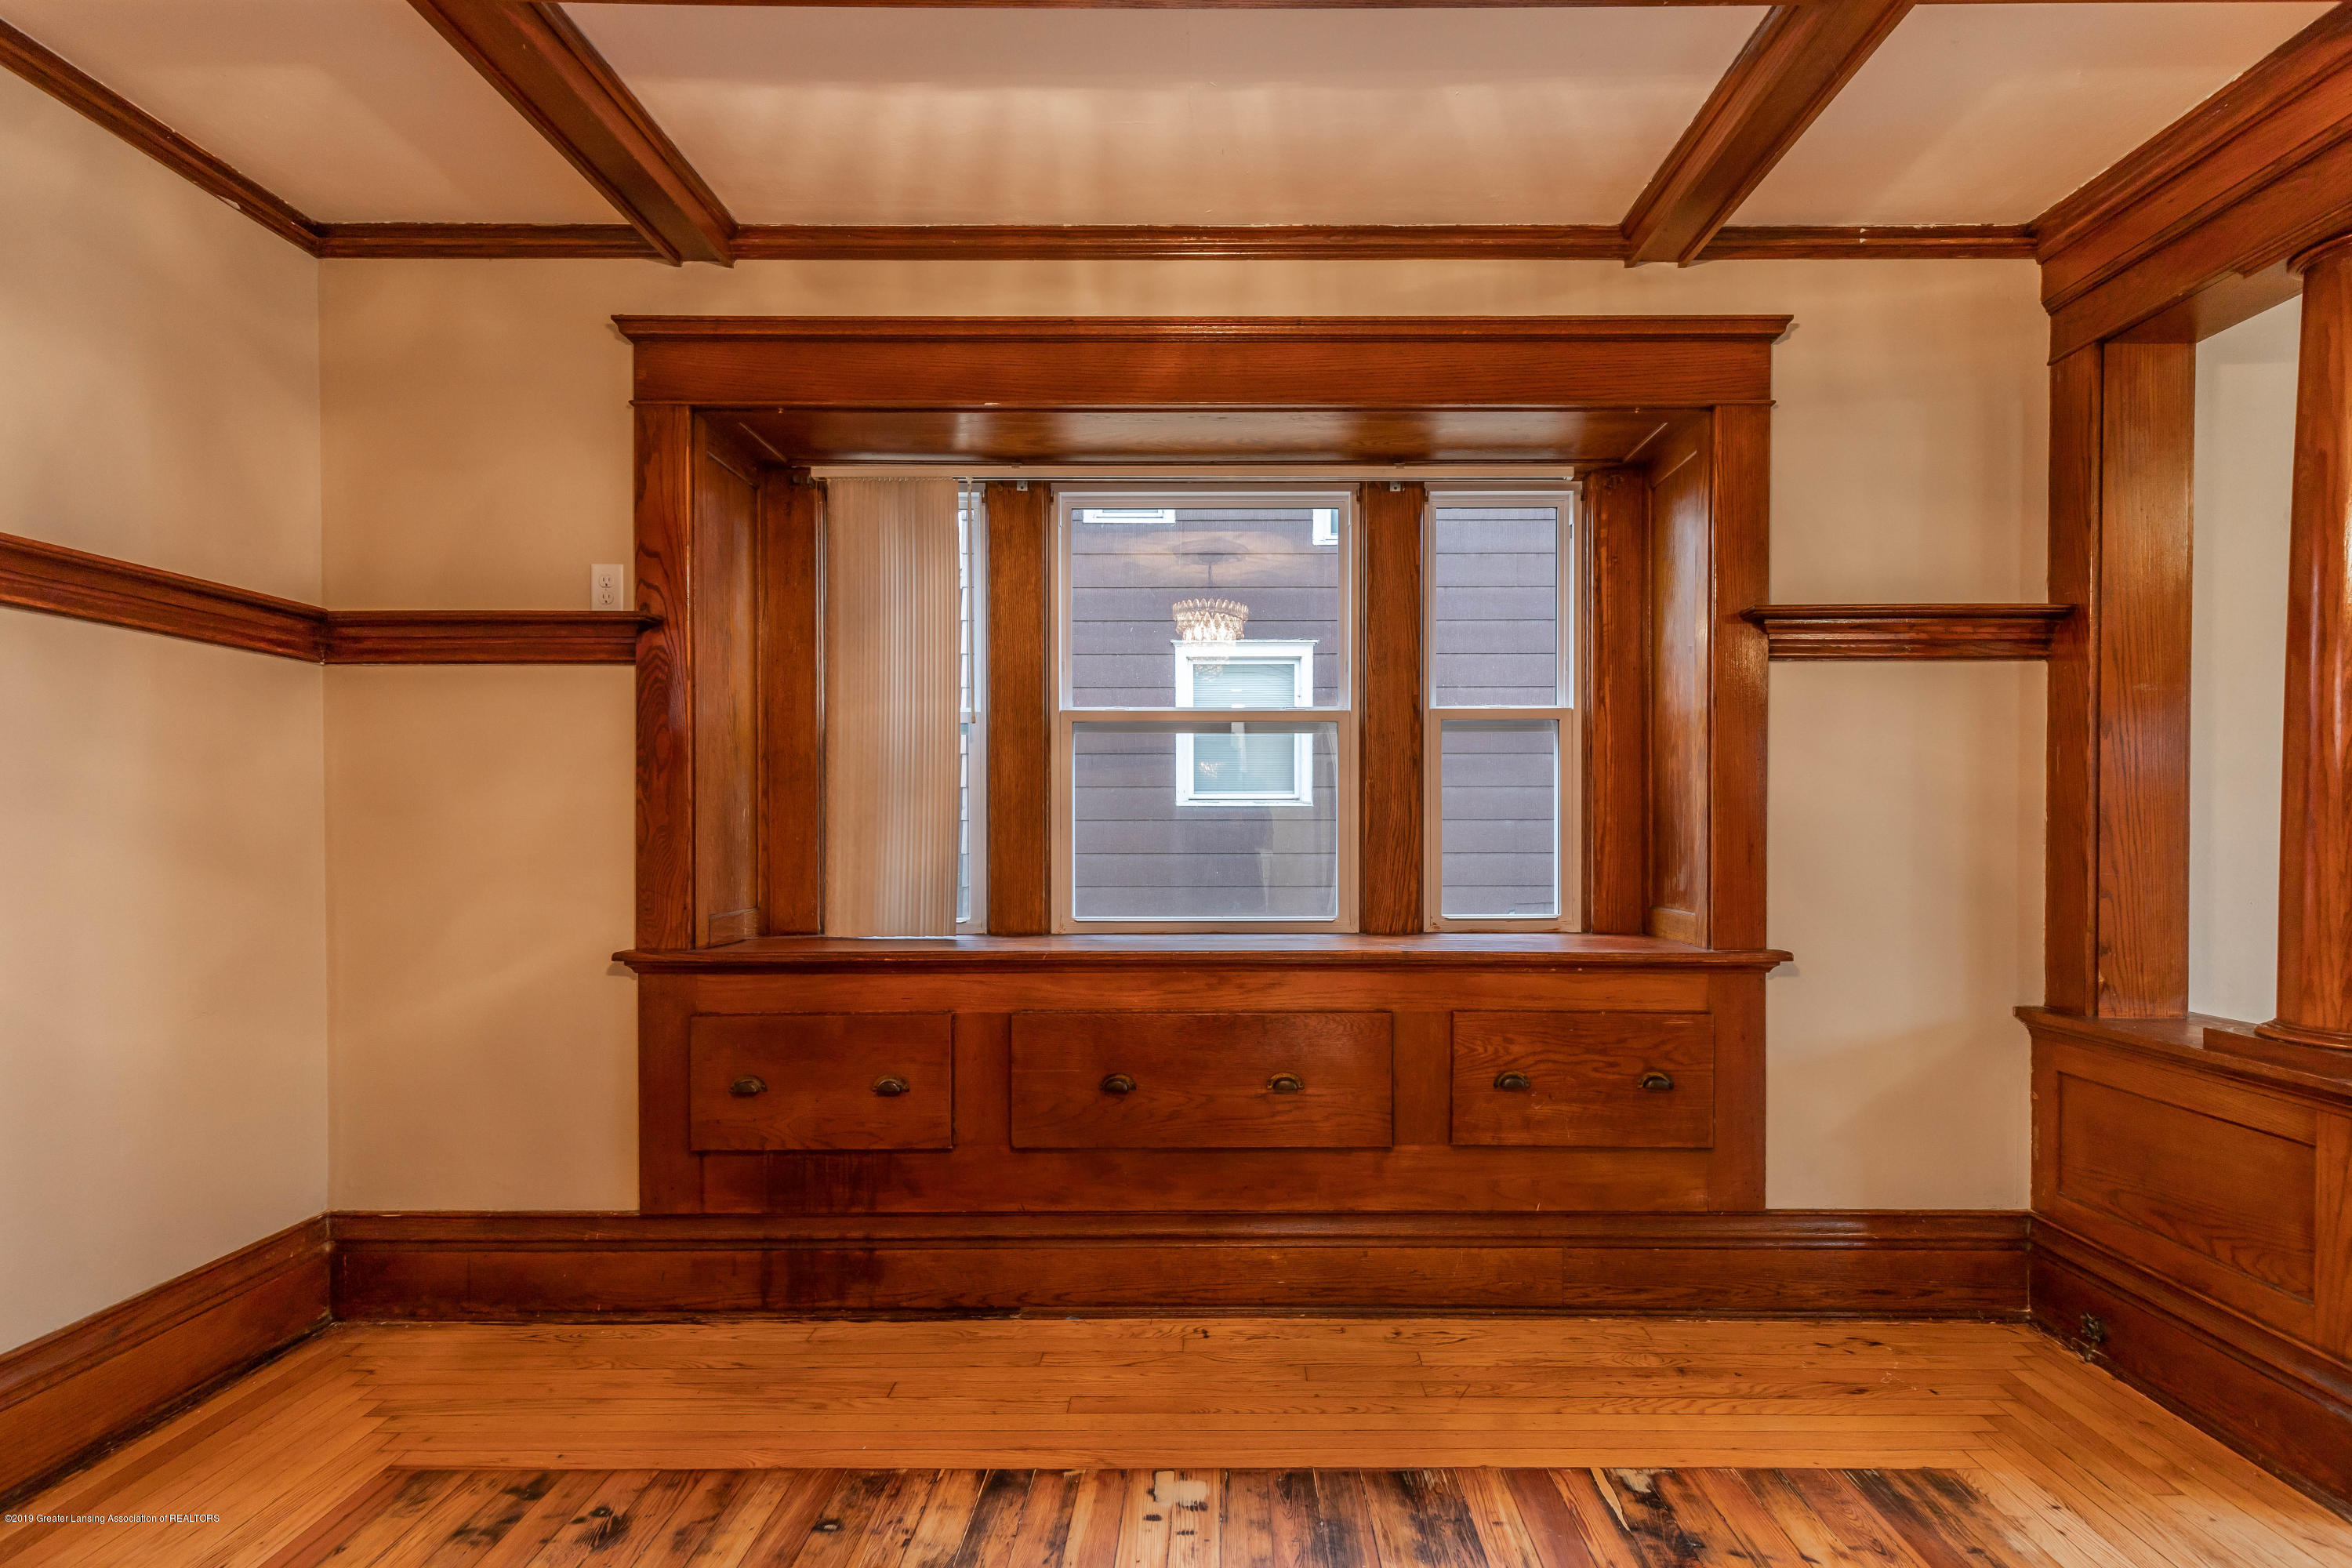 906 N Sycamore St - Dining Room - 10